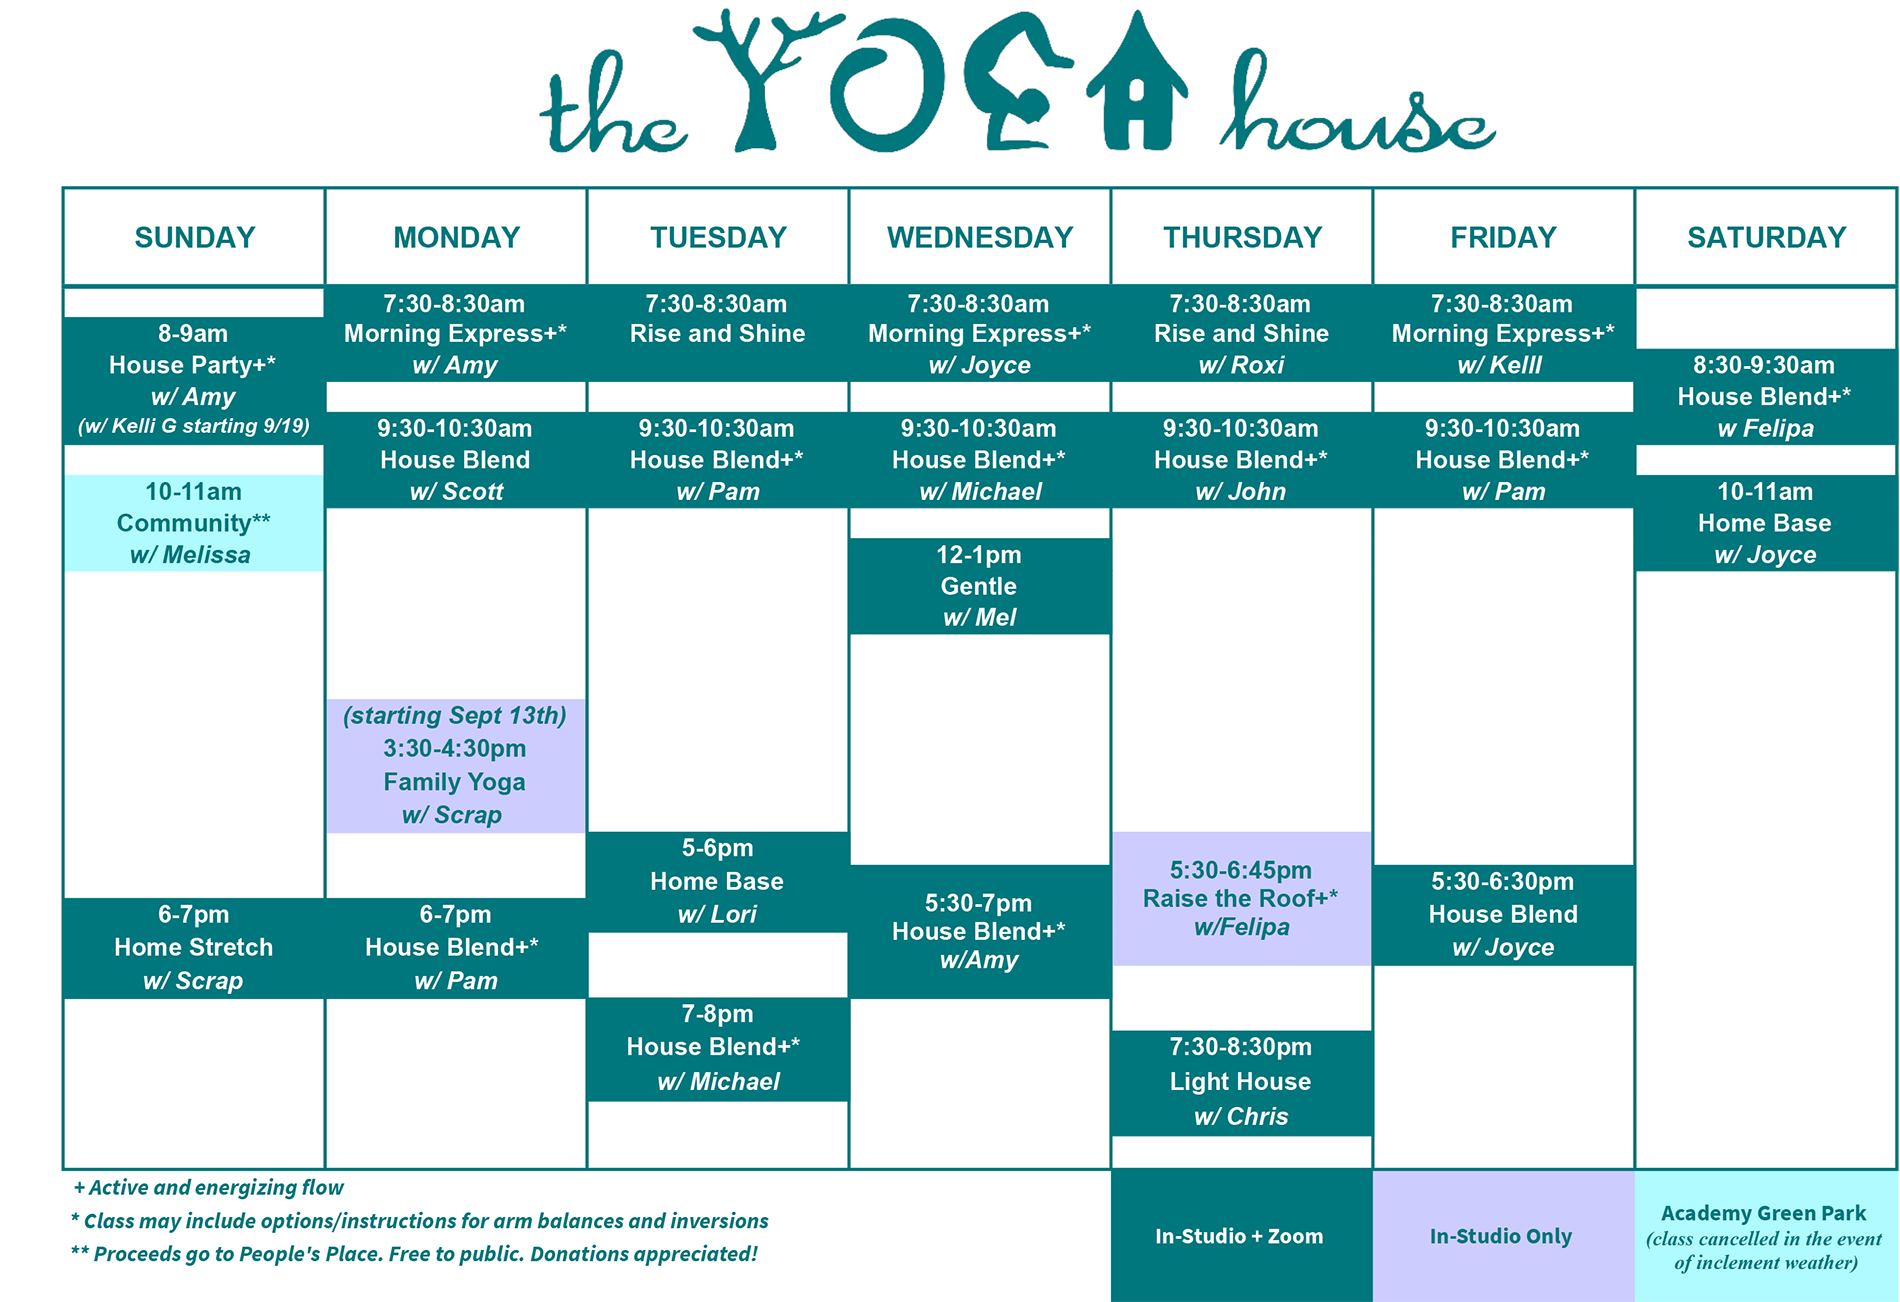 A calendar showing the fall 2021 schedule for the yoga house